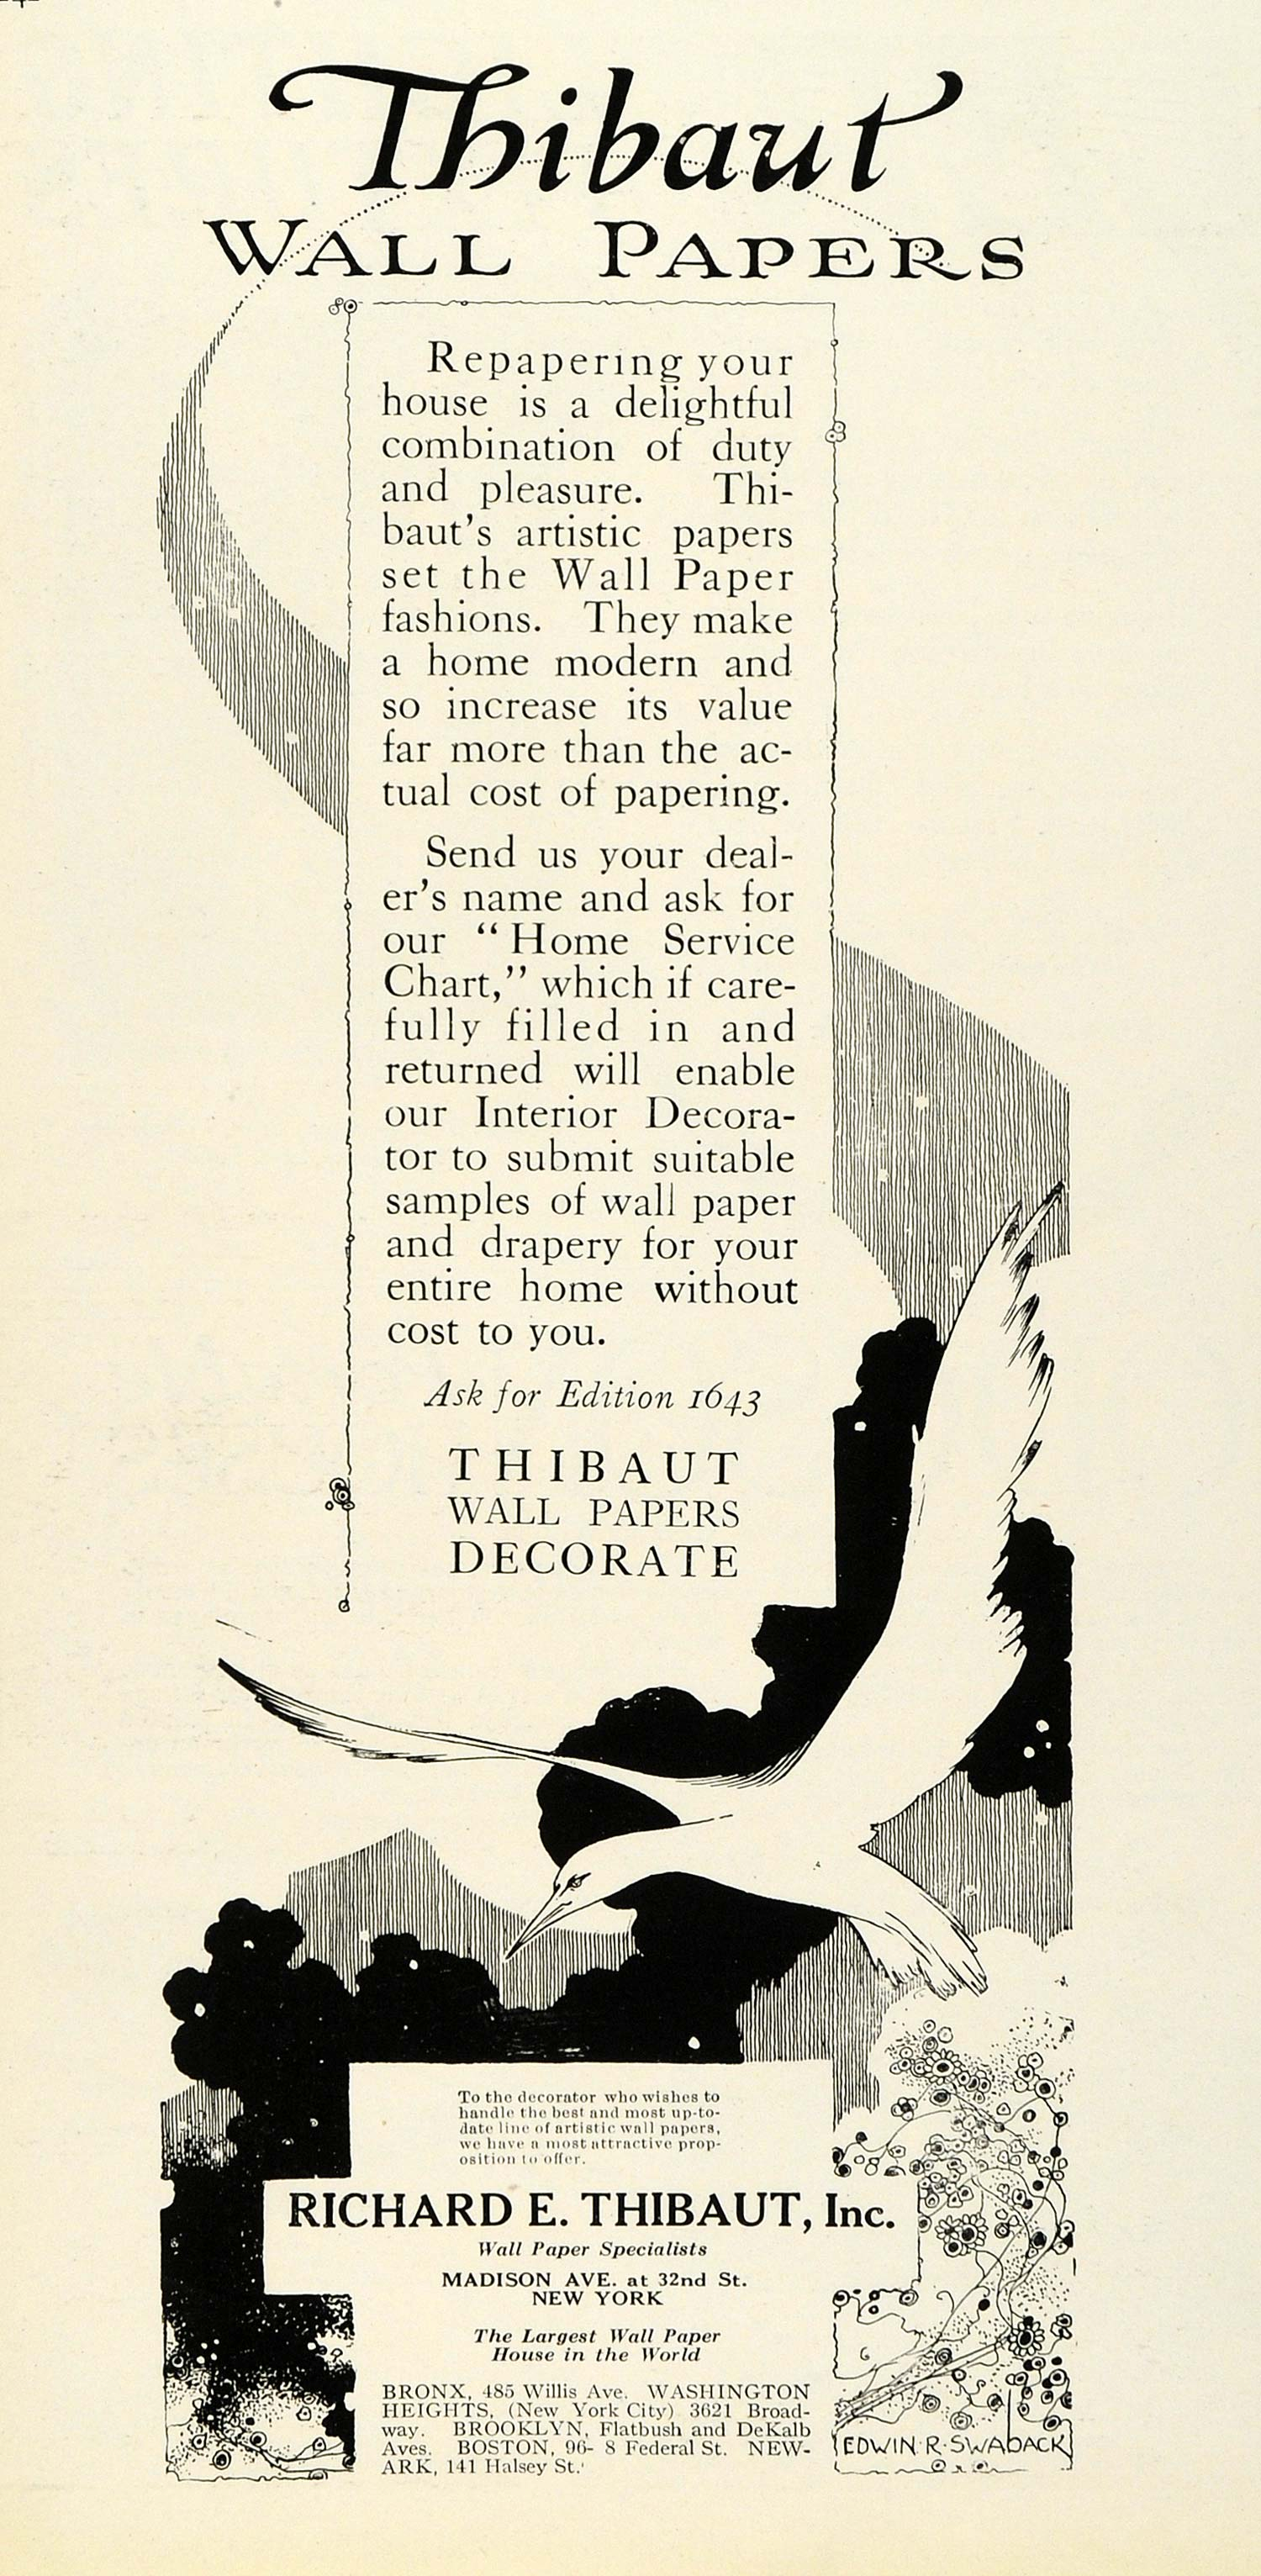 1920 Ad Richard E Thibaut Inc Wall Papers Home Decoration Interior Design HB2